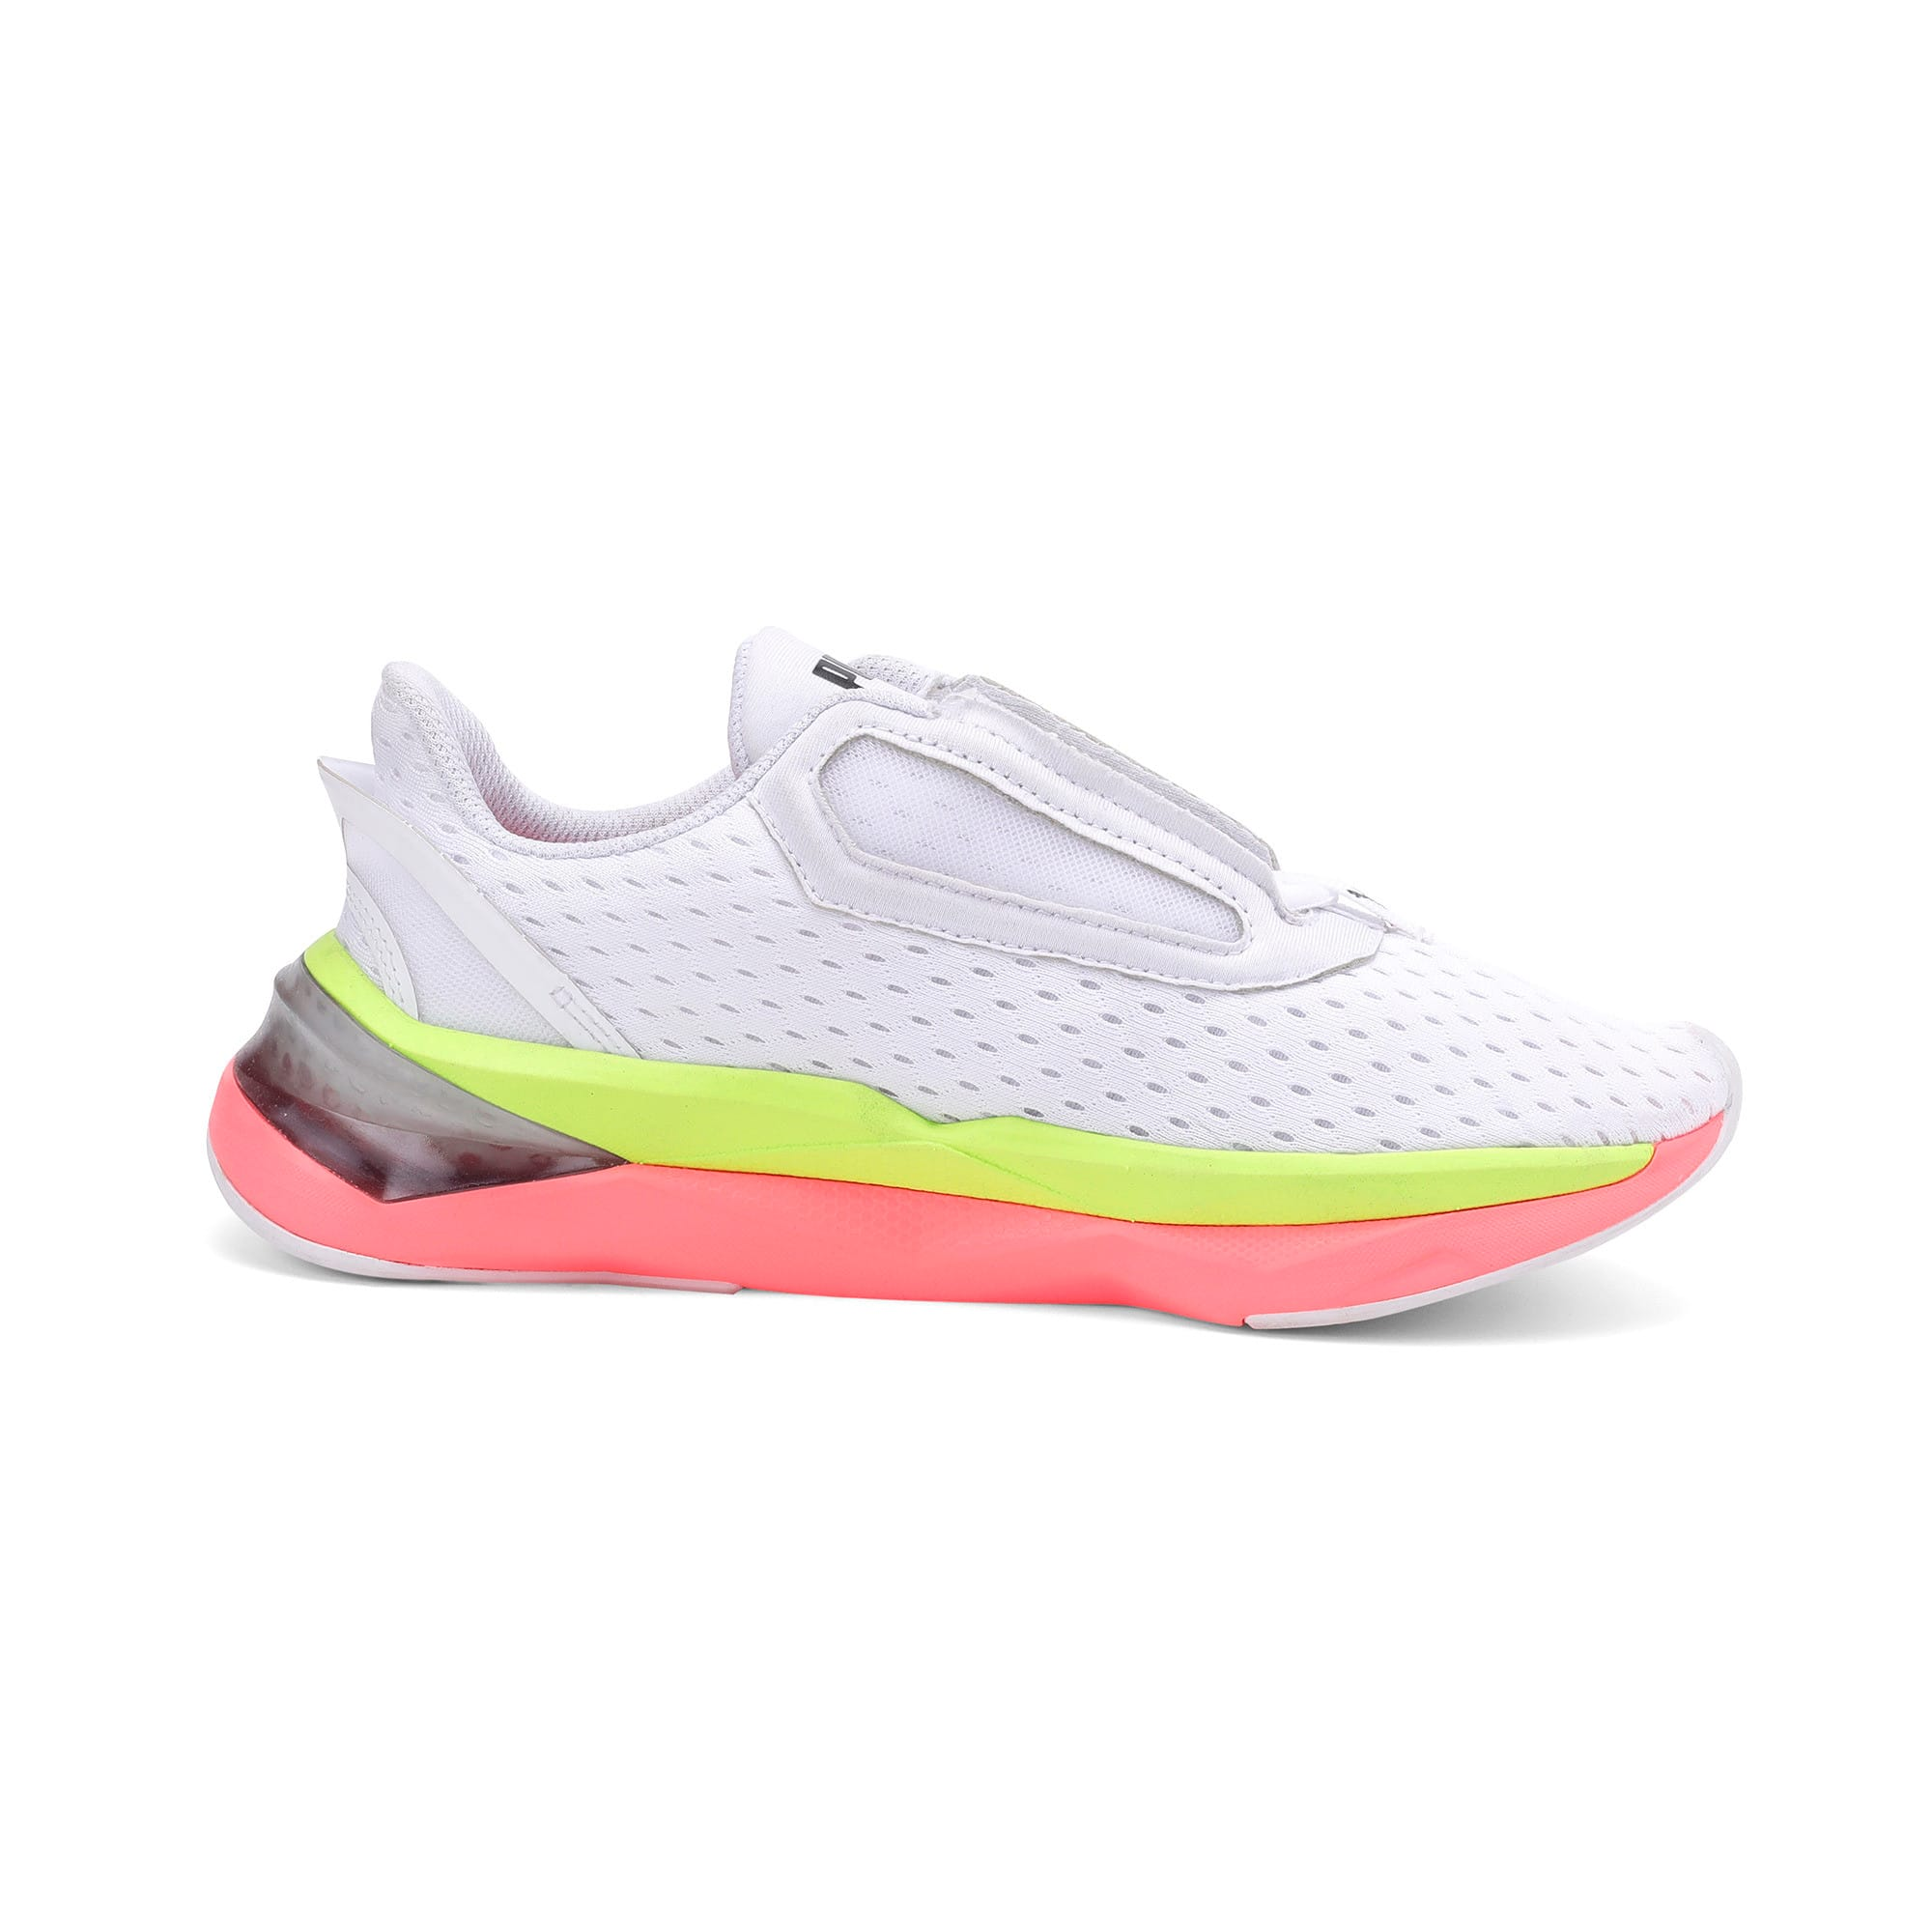 Thumbnail 8 of LQDCell Shatter XT Women's Training Shoes, Puma White-Pink Alert, medium-IND